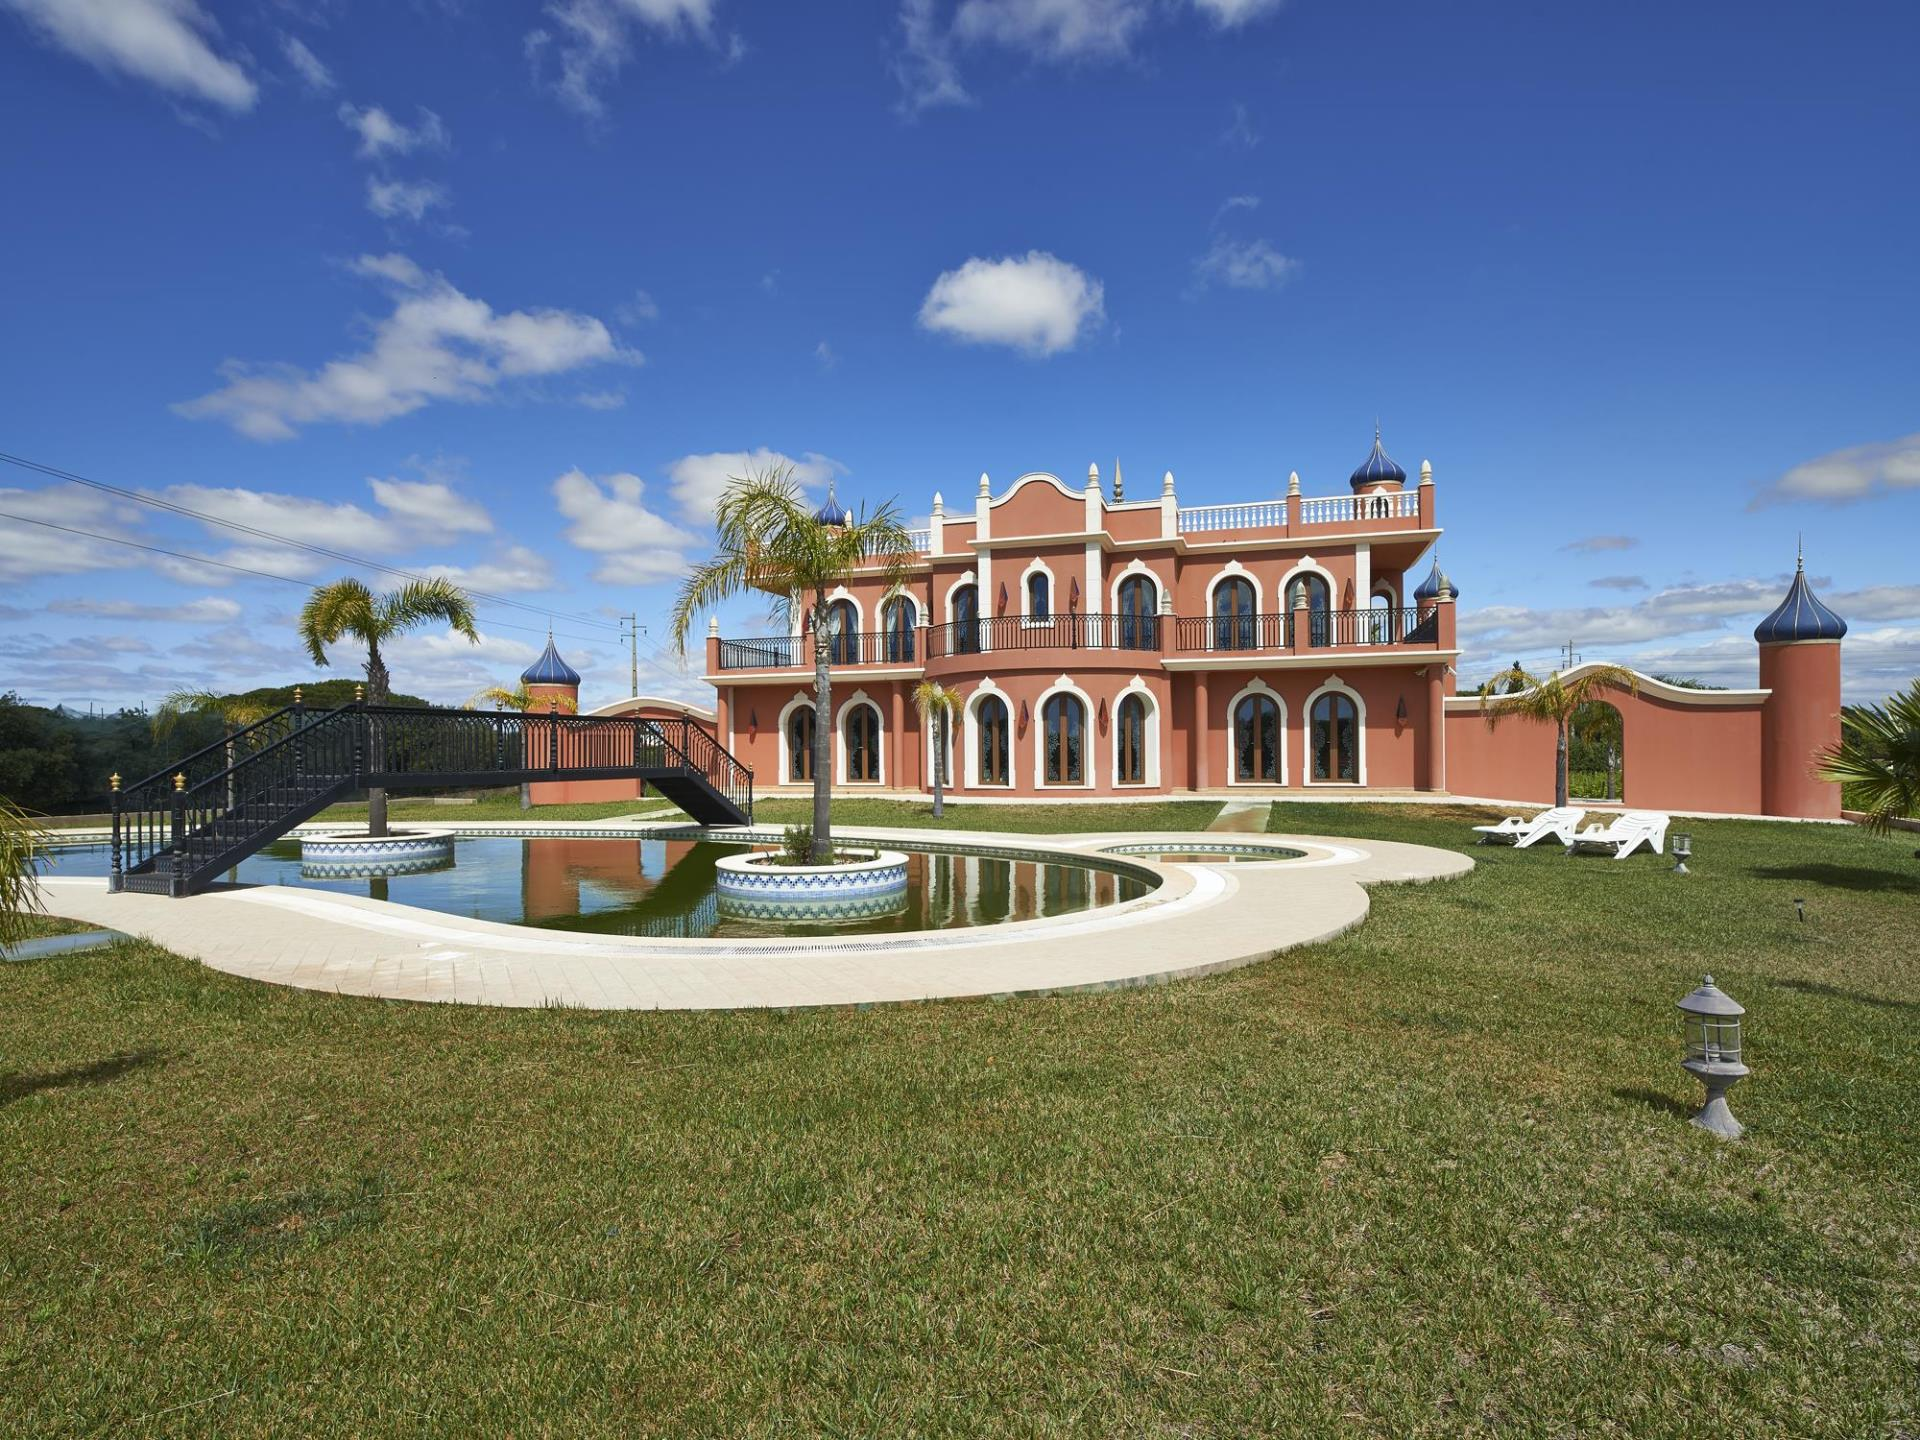 Farm / Ranch / Plantation for Sale at Country Estate, 7 bedrooms, for Sale Loule, Algarve Portugal